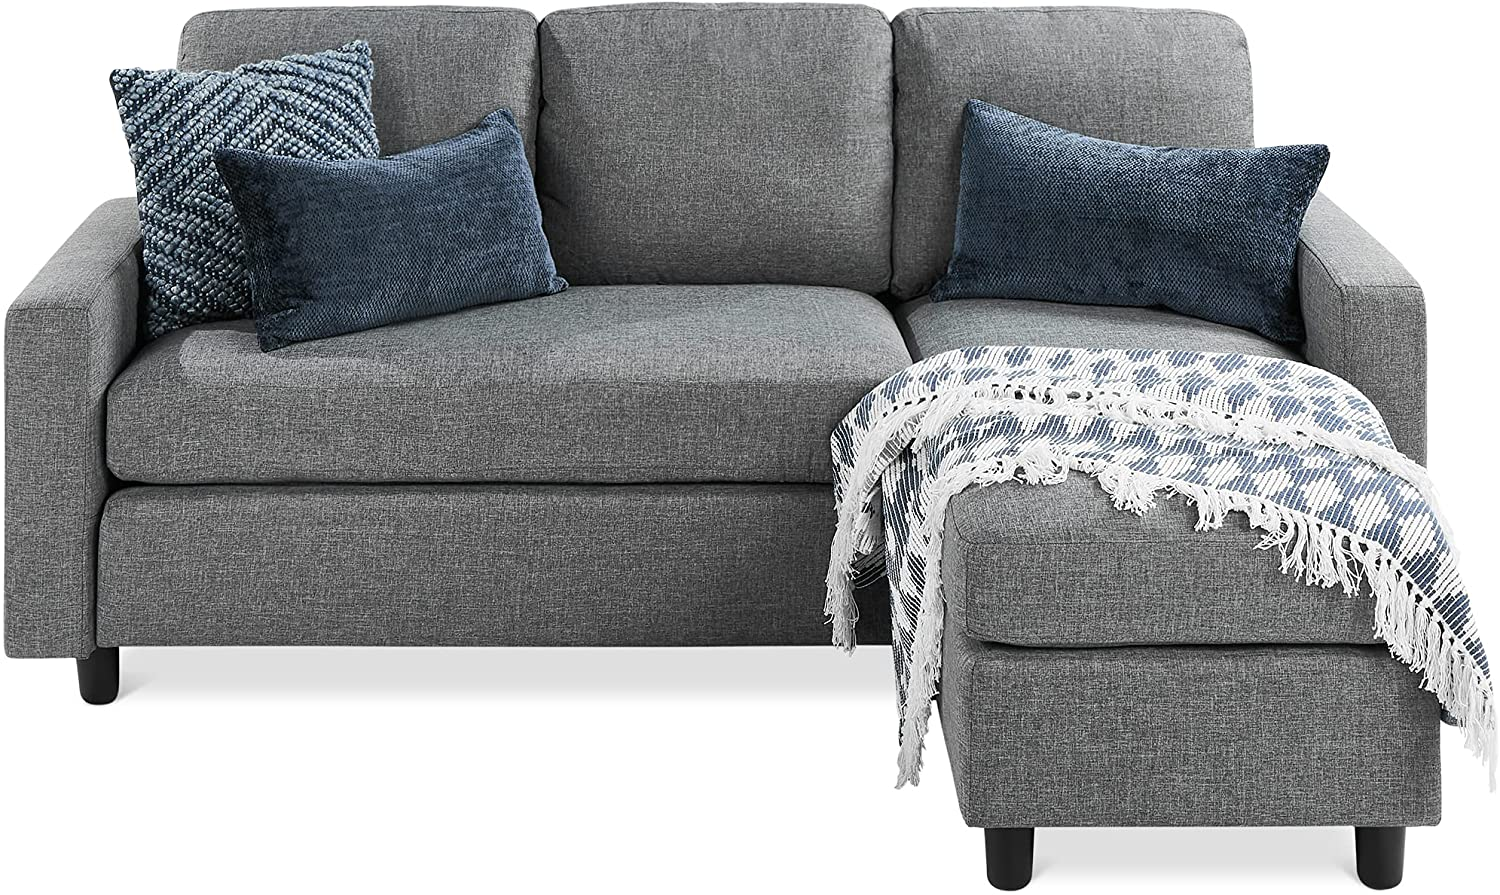 Best Choice Products Linen Sectional Sofa for Home, Apartment, Dorm, Bonus Room, Compact Spaces w/Chaise Lounge, 3-Seat, L-Shape Design, Reversible Ottoman Bench, 680lb Capacity - Gray